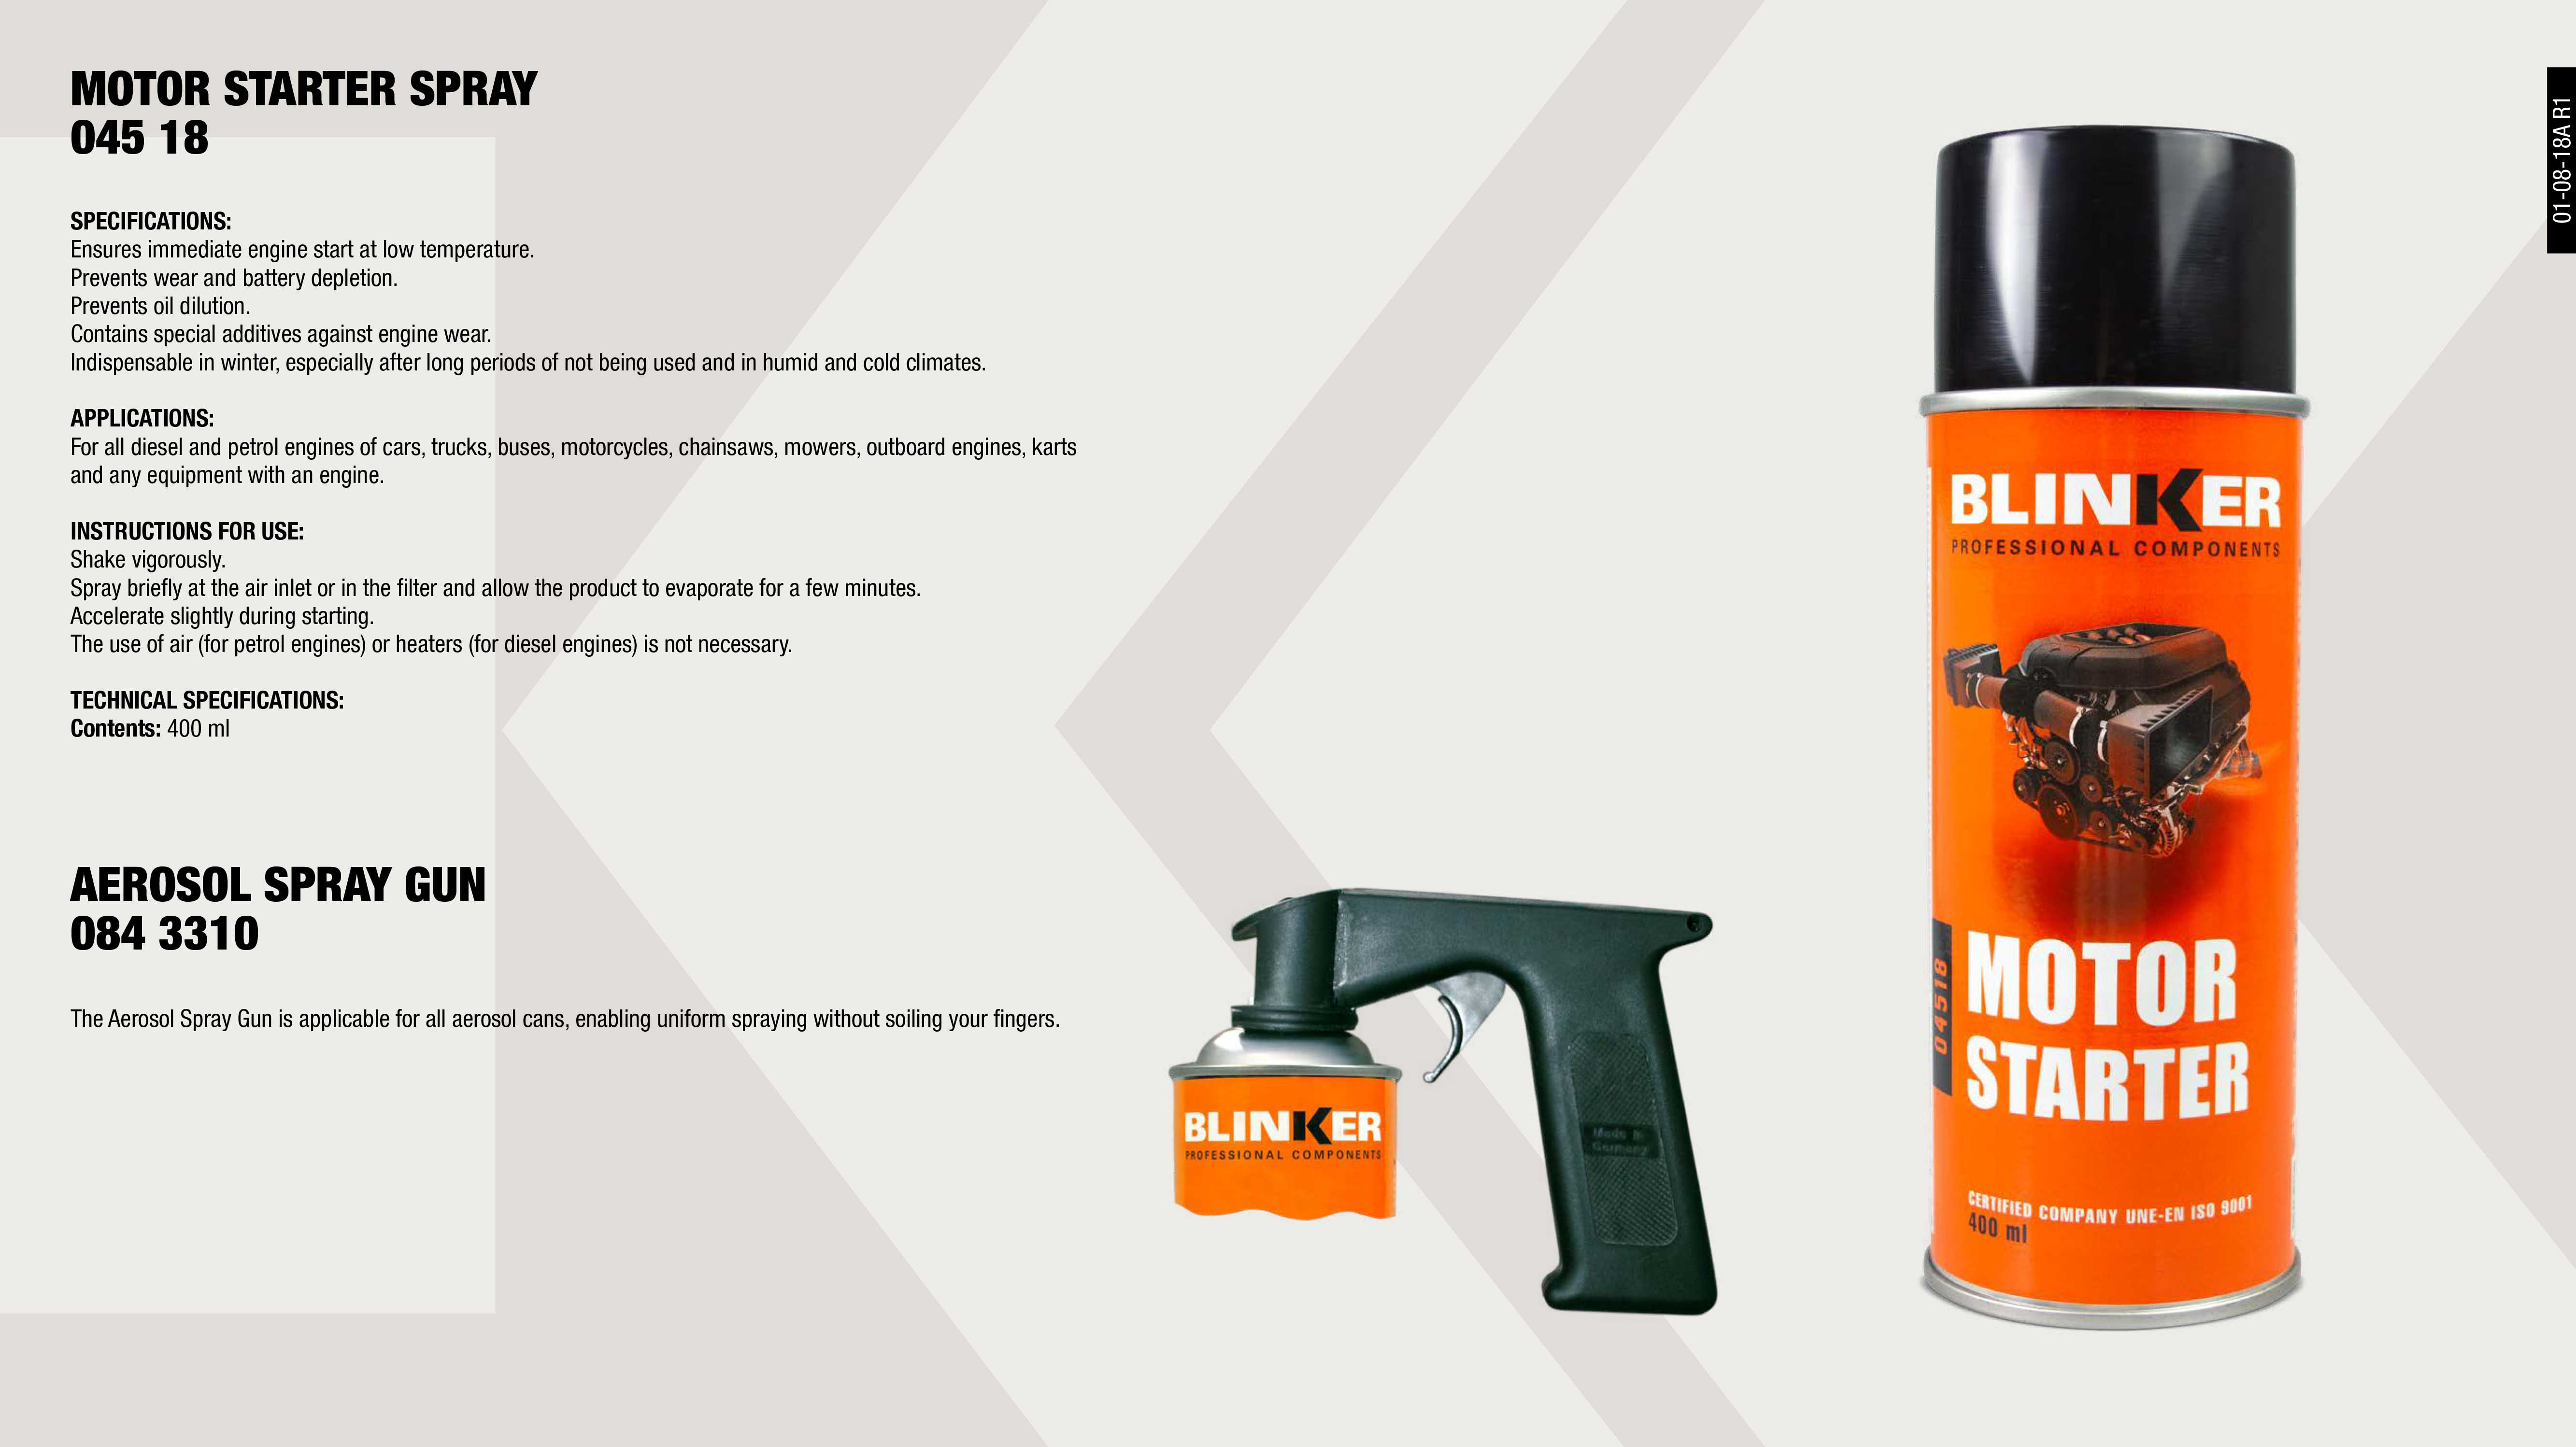 MOTOR STARTER BLINKER 400ML.                                ,  									SPRAY AEROSOL GUN                                           ,